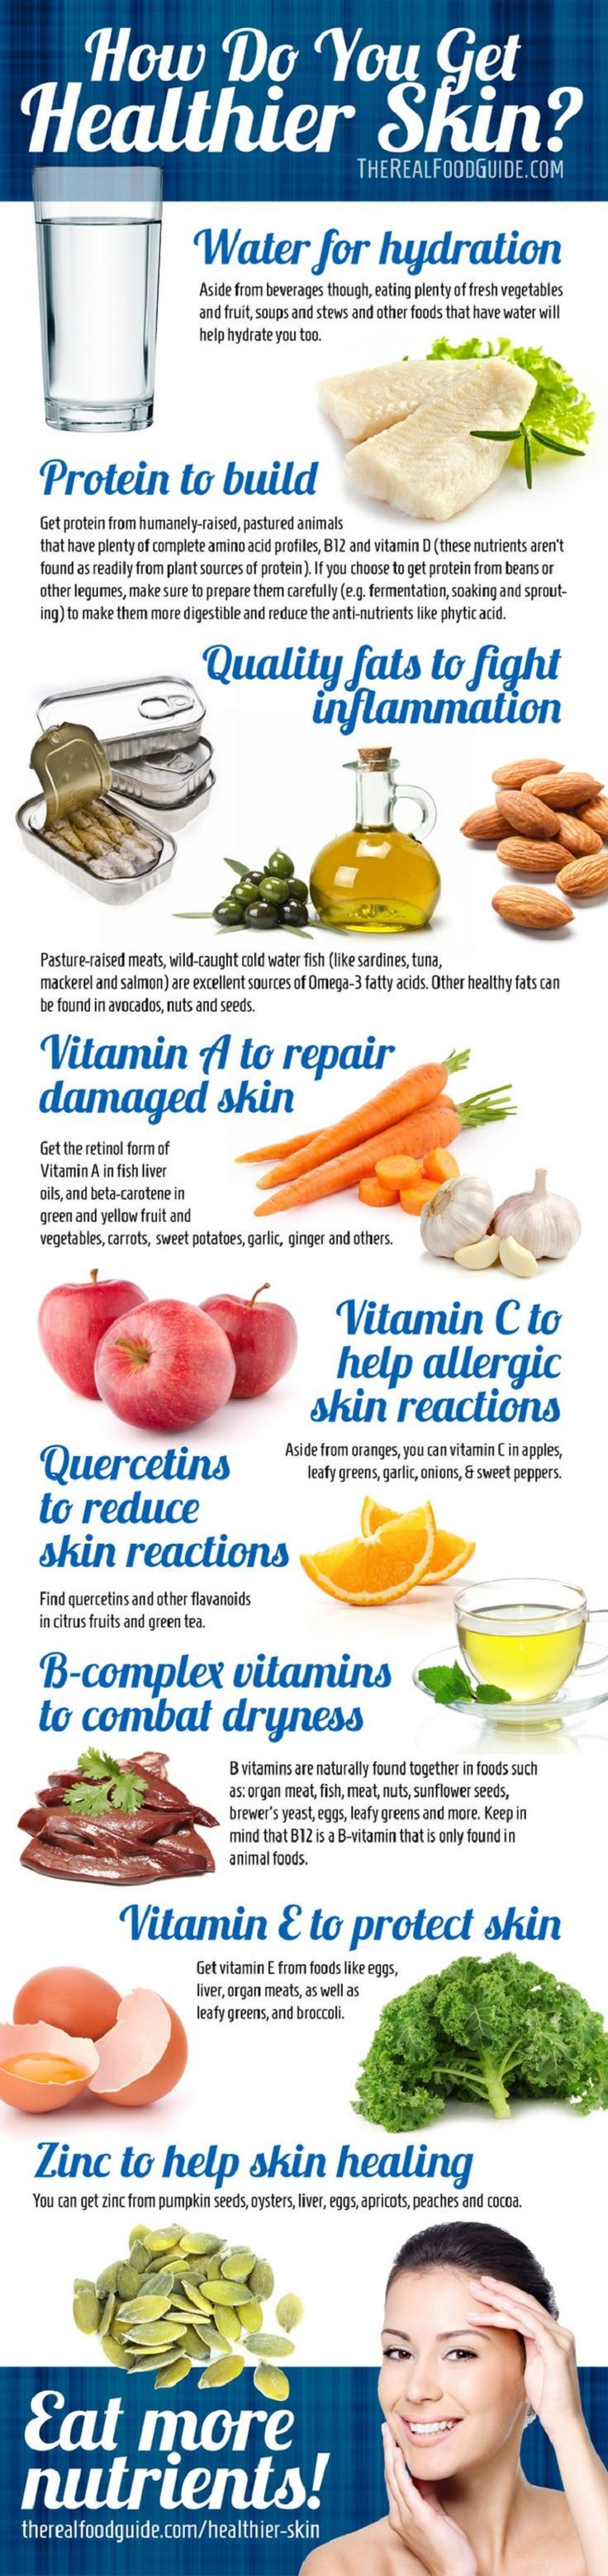 How to get clear skin vitamins for healthy skin - 10 Best Pinterest Infographics for All Beauty Addicts | GleamItUp